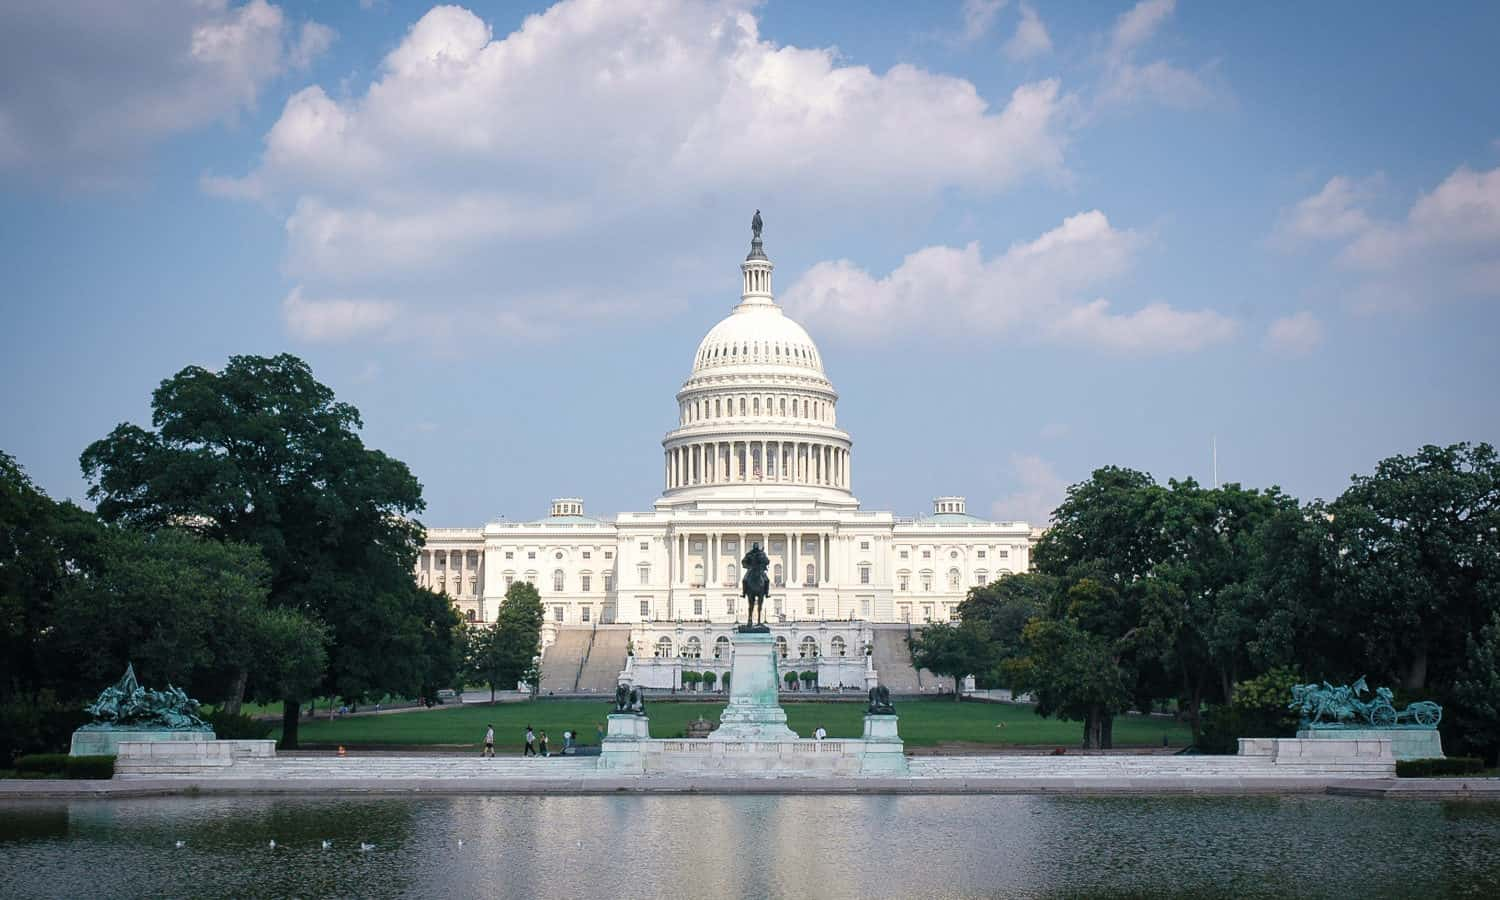 Food Policy Action is mobilizing stakeholders from across the United States to voice their united opposition to the draft 2018 Farm Bill released by the House Agriculture Committee.